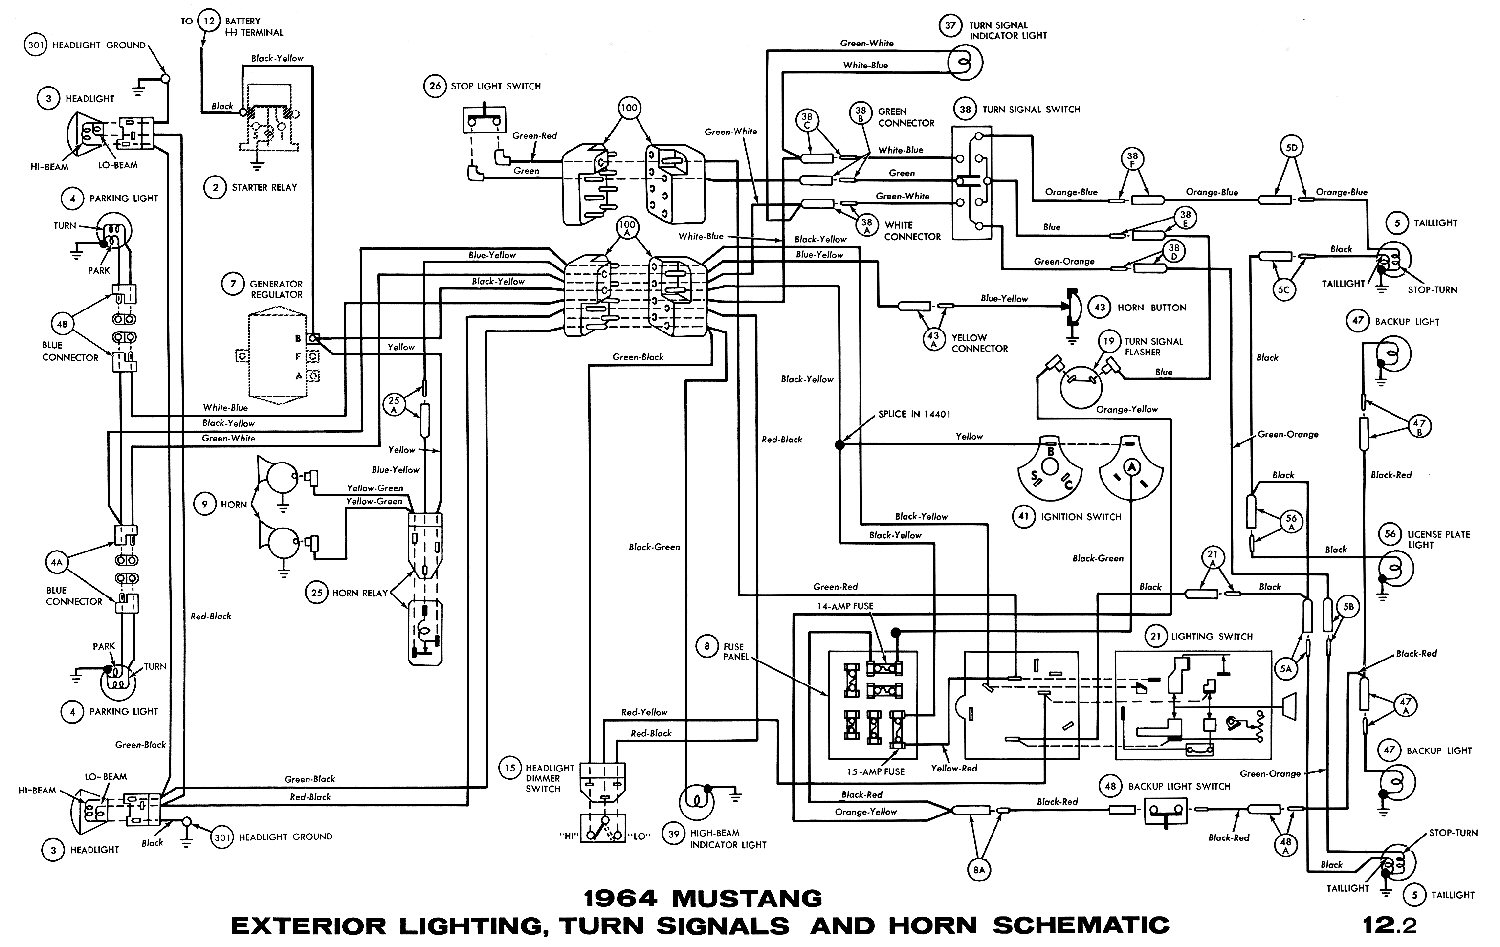 1964i 1964 mustang wiring diagrams average joe restoration 1969 mustang alternator wiring diagram at eliteediting.co